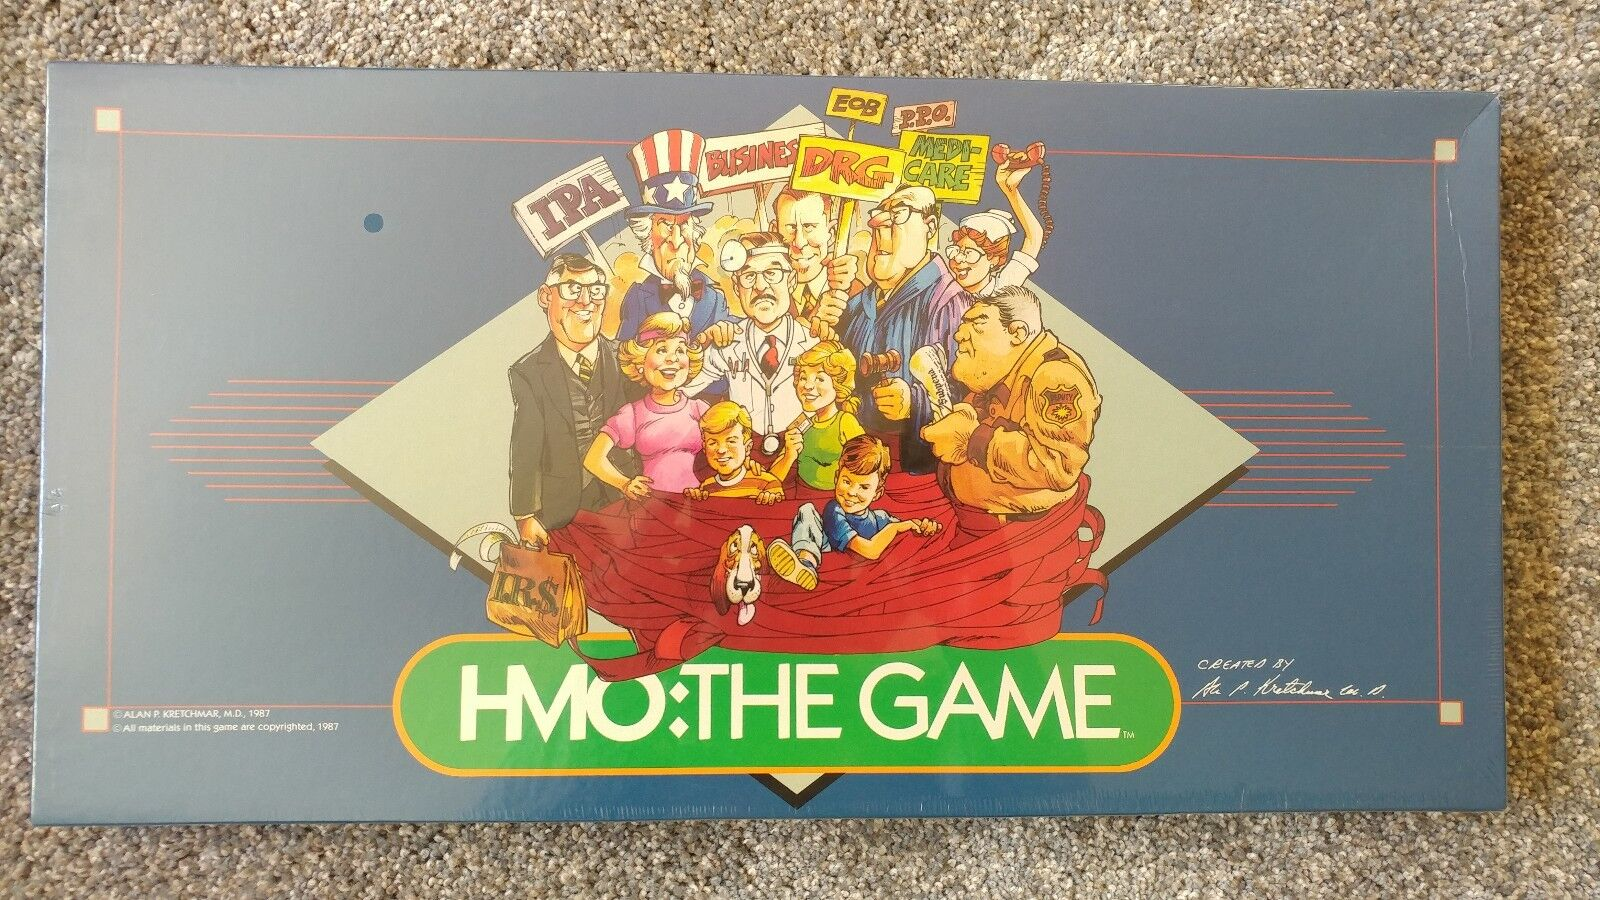 New, Sealed, Vintage 1987 HMO  THE GAME Alan P. Kretchmar, M.D. Board Game